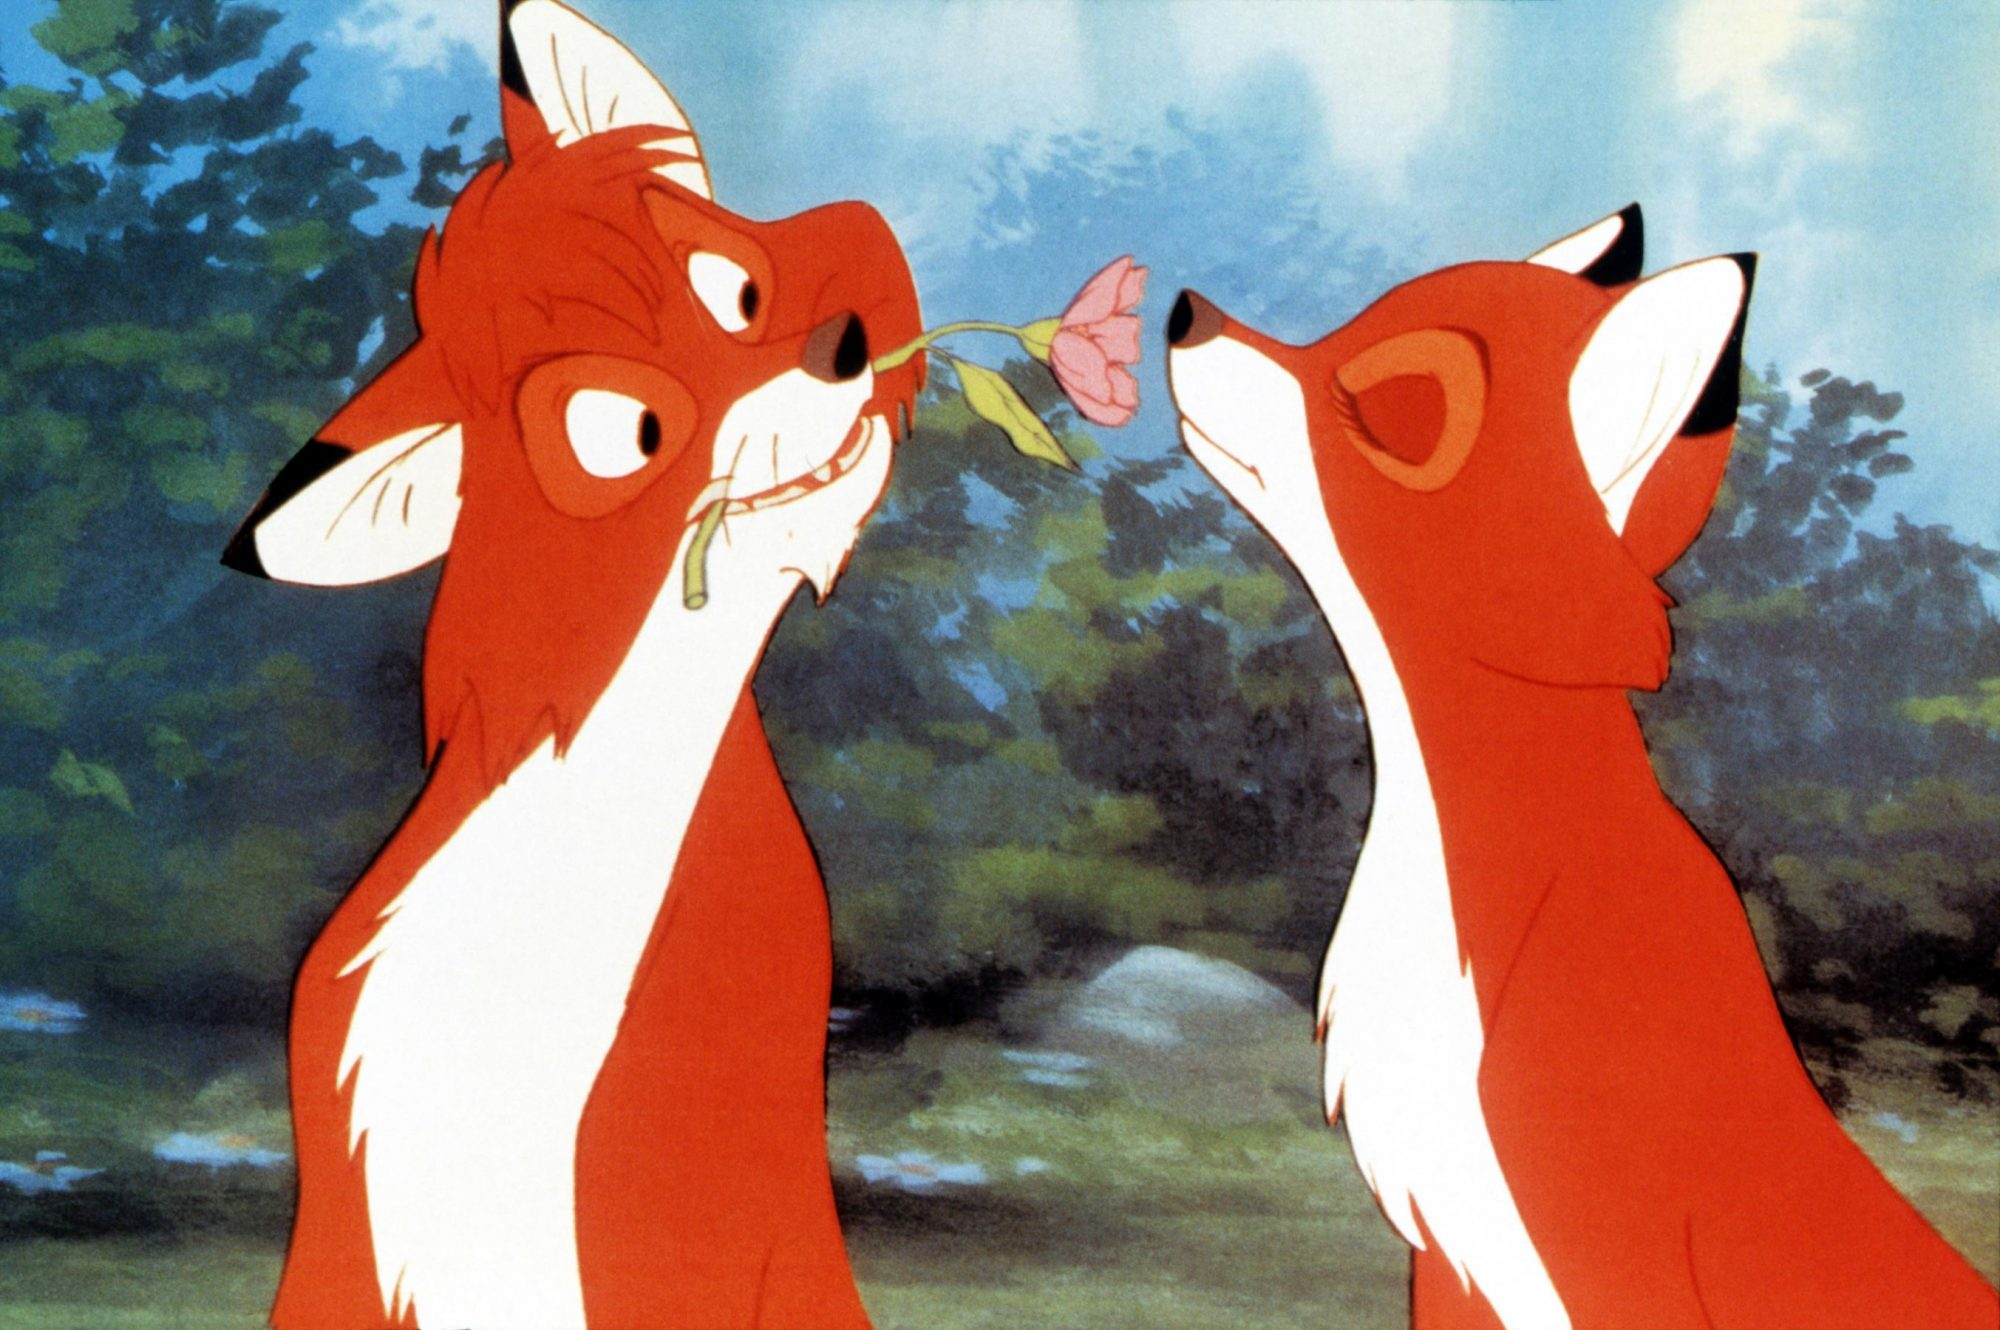 THE FOX AND THE HOUND, from left: Tod, Vixie, 1981, © Buena Vista/courtesy Everett Collection